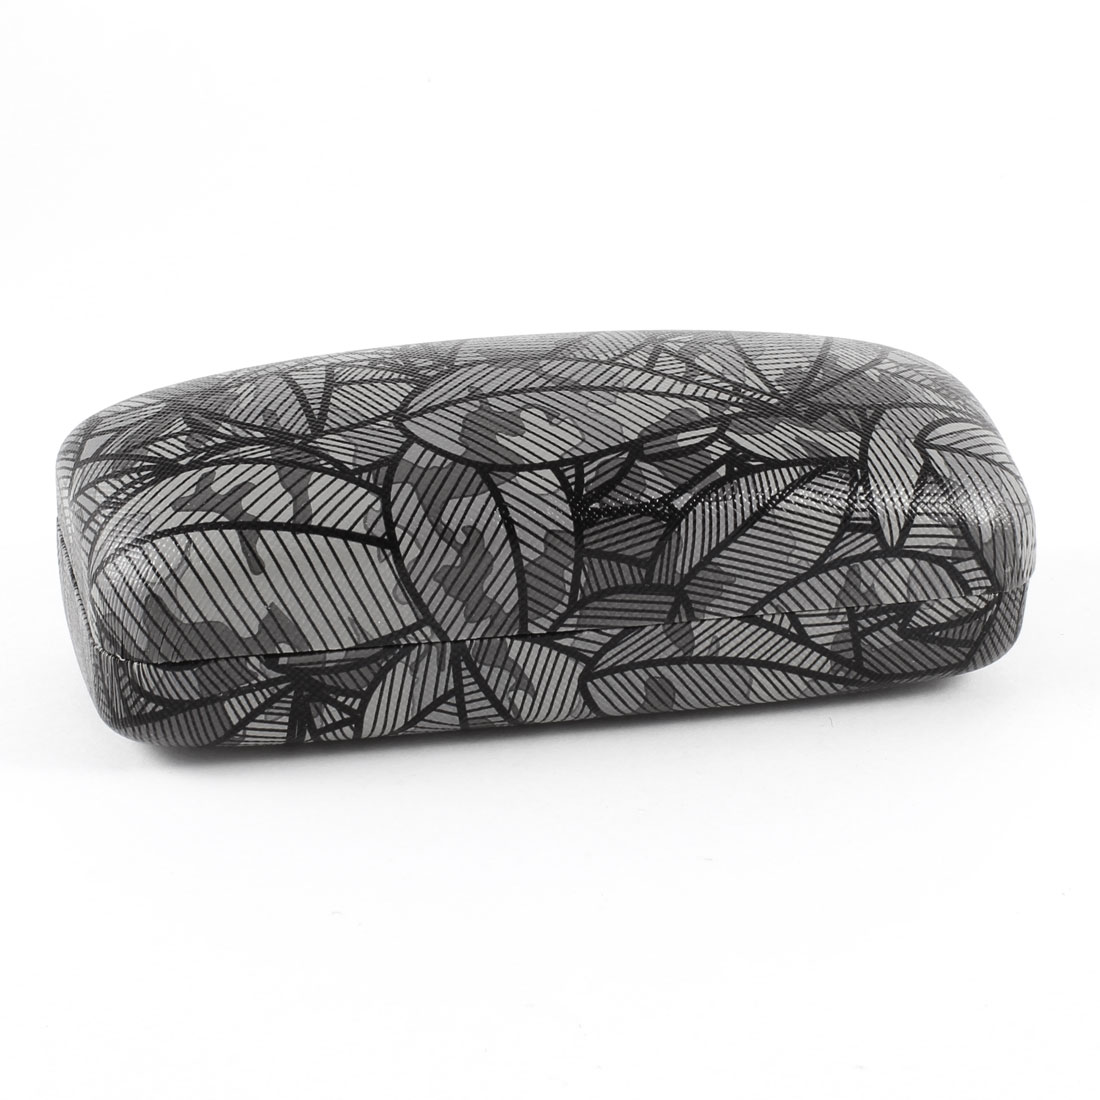 Textured Pattern Eyeglasses Spectacle Case Box Dark Gray Black